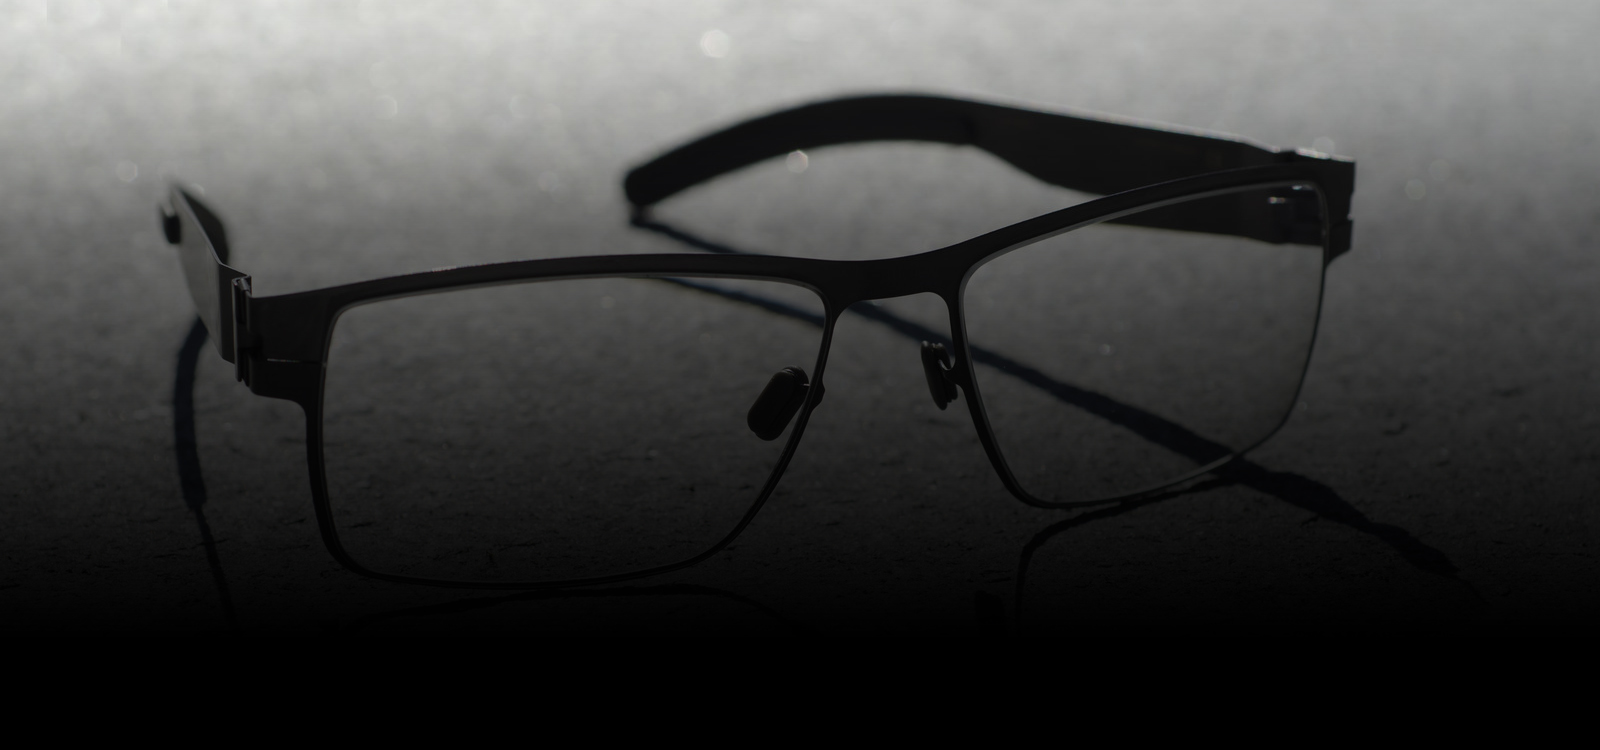 America's Leading Independent Optical Lab - Contact Us